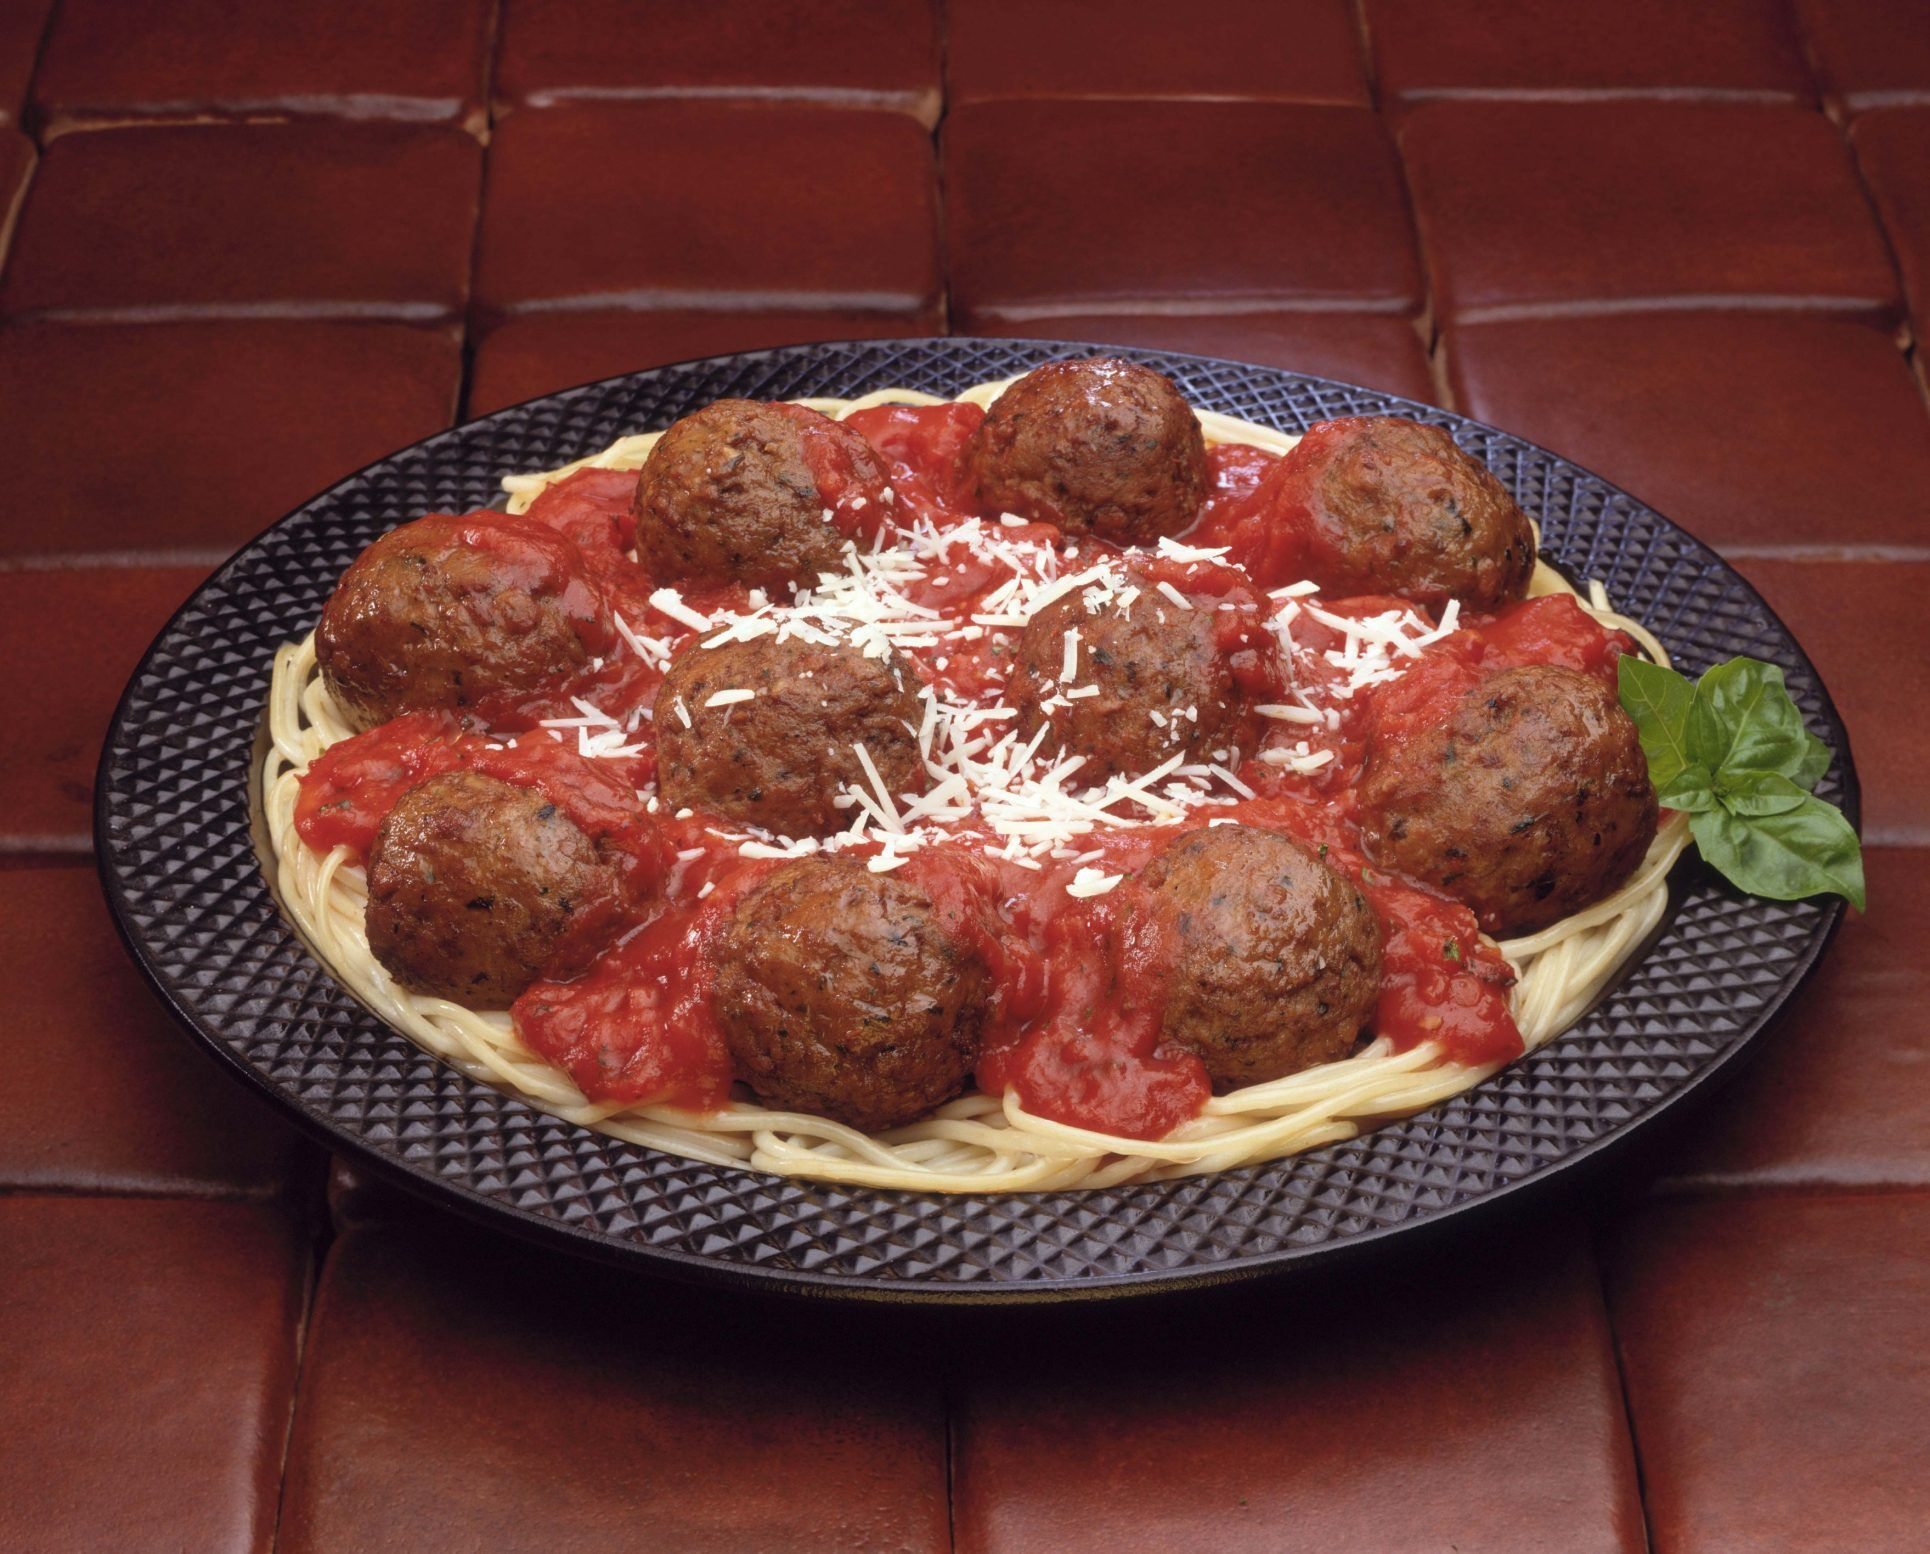 How long do you cook large meatballs in a convection oven